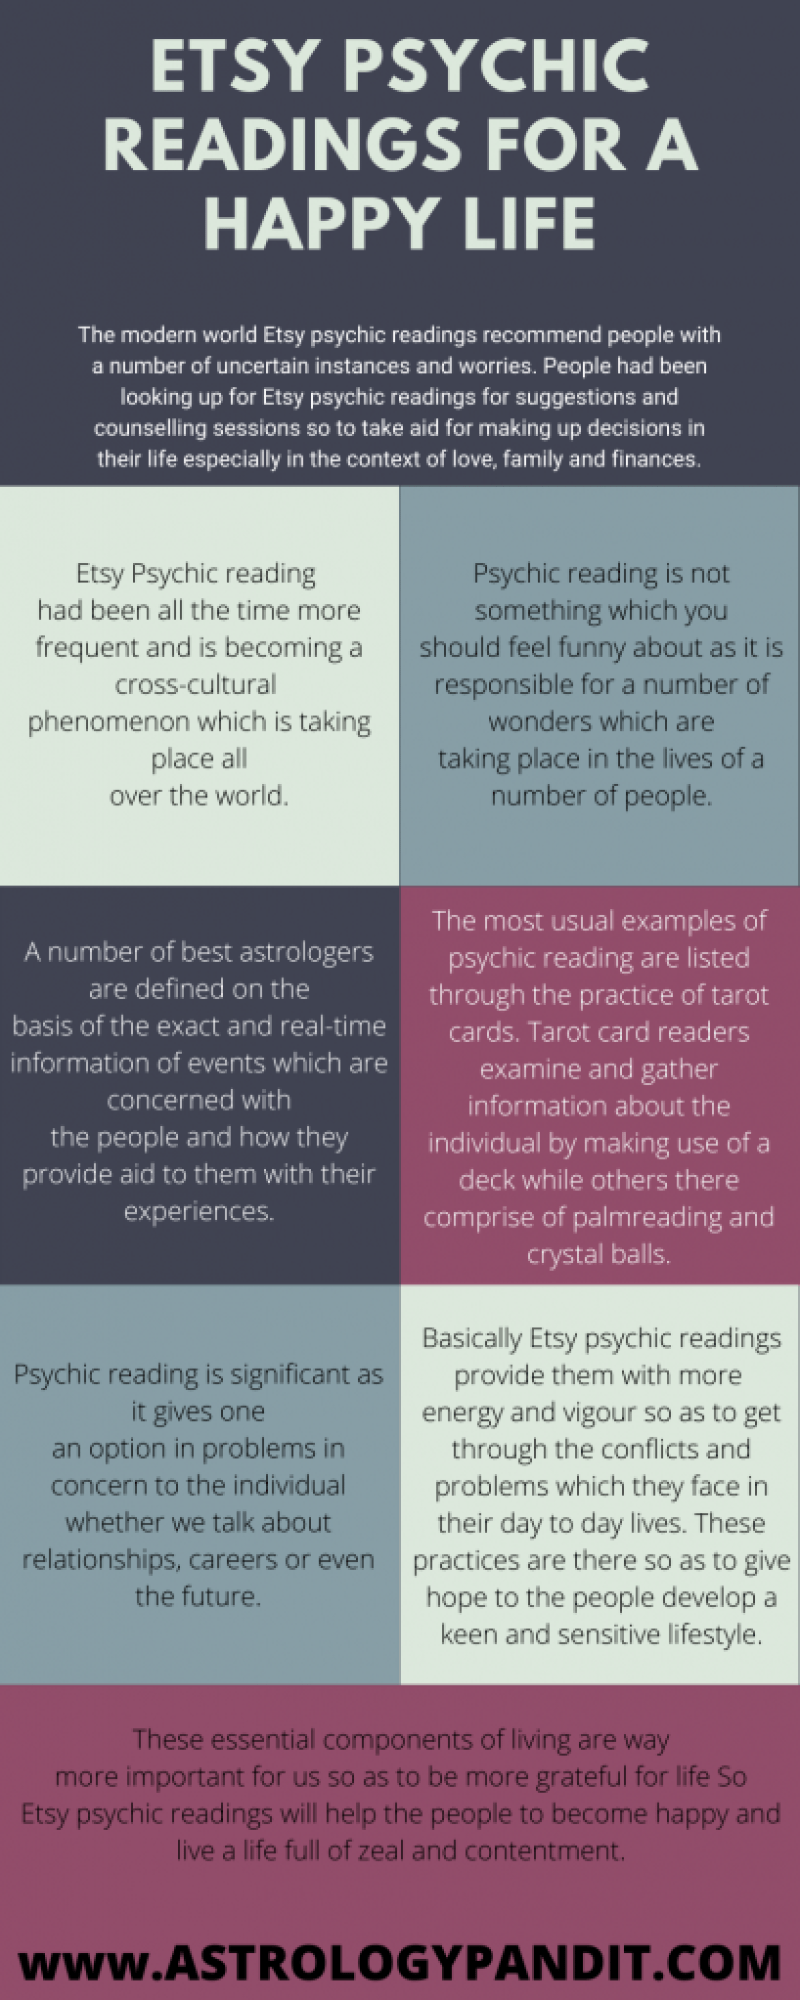 etsy psychic readings infographic